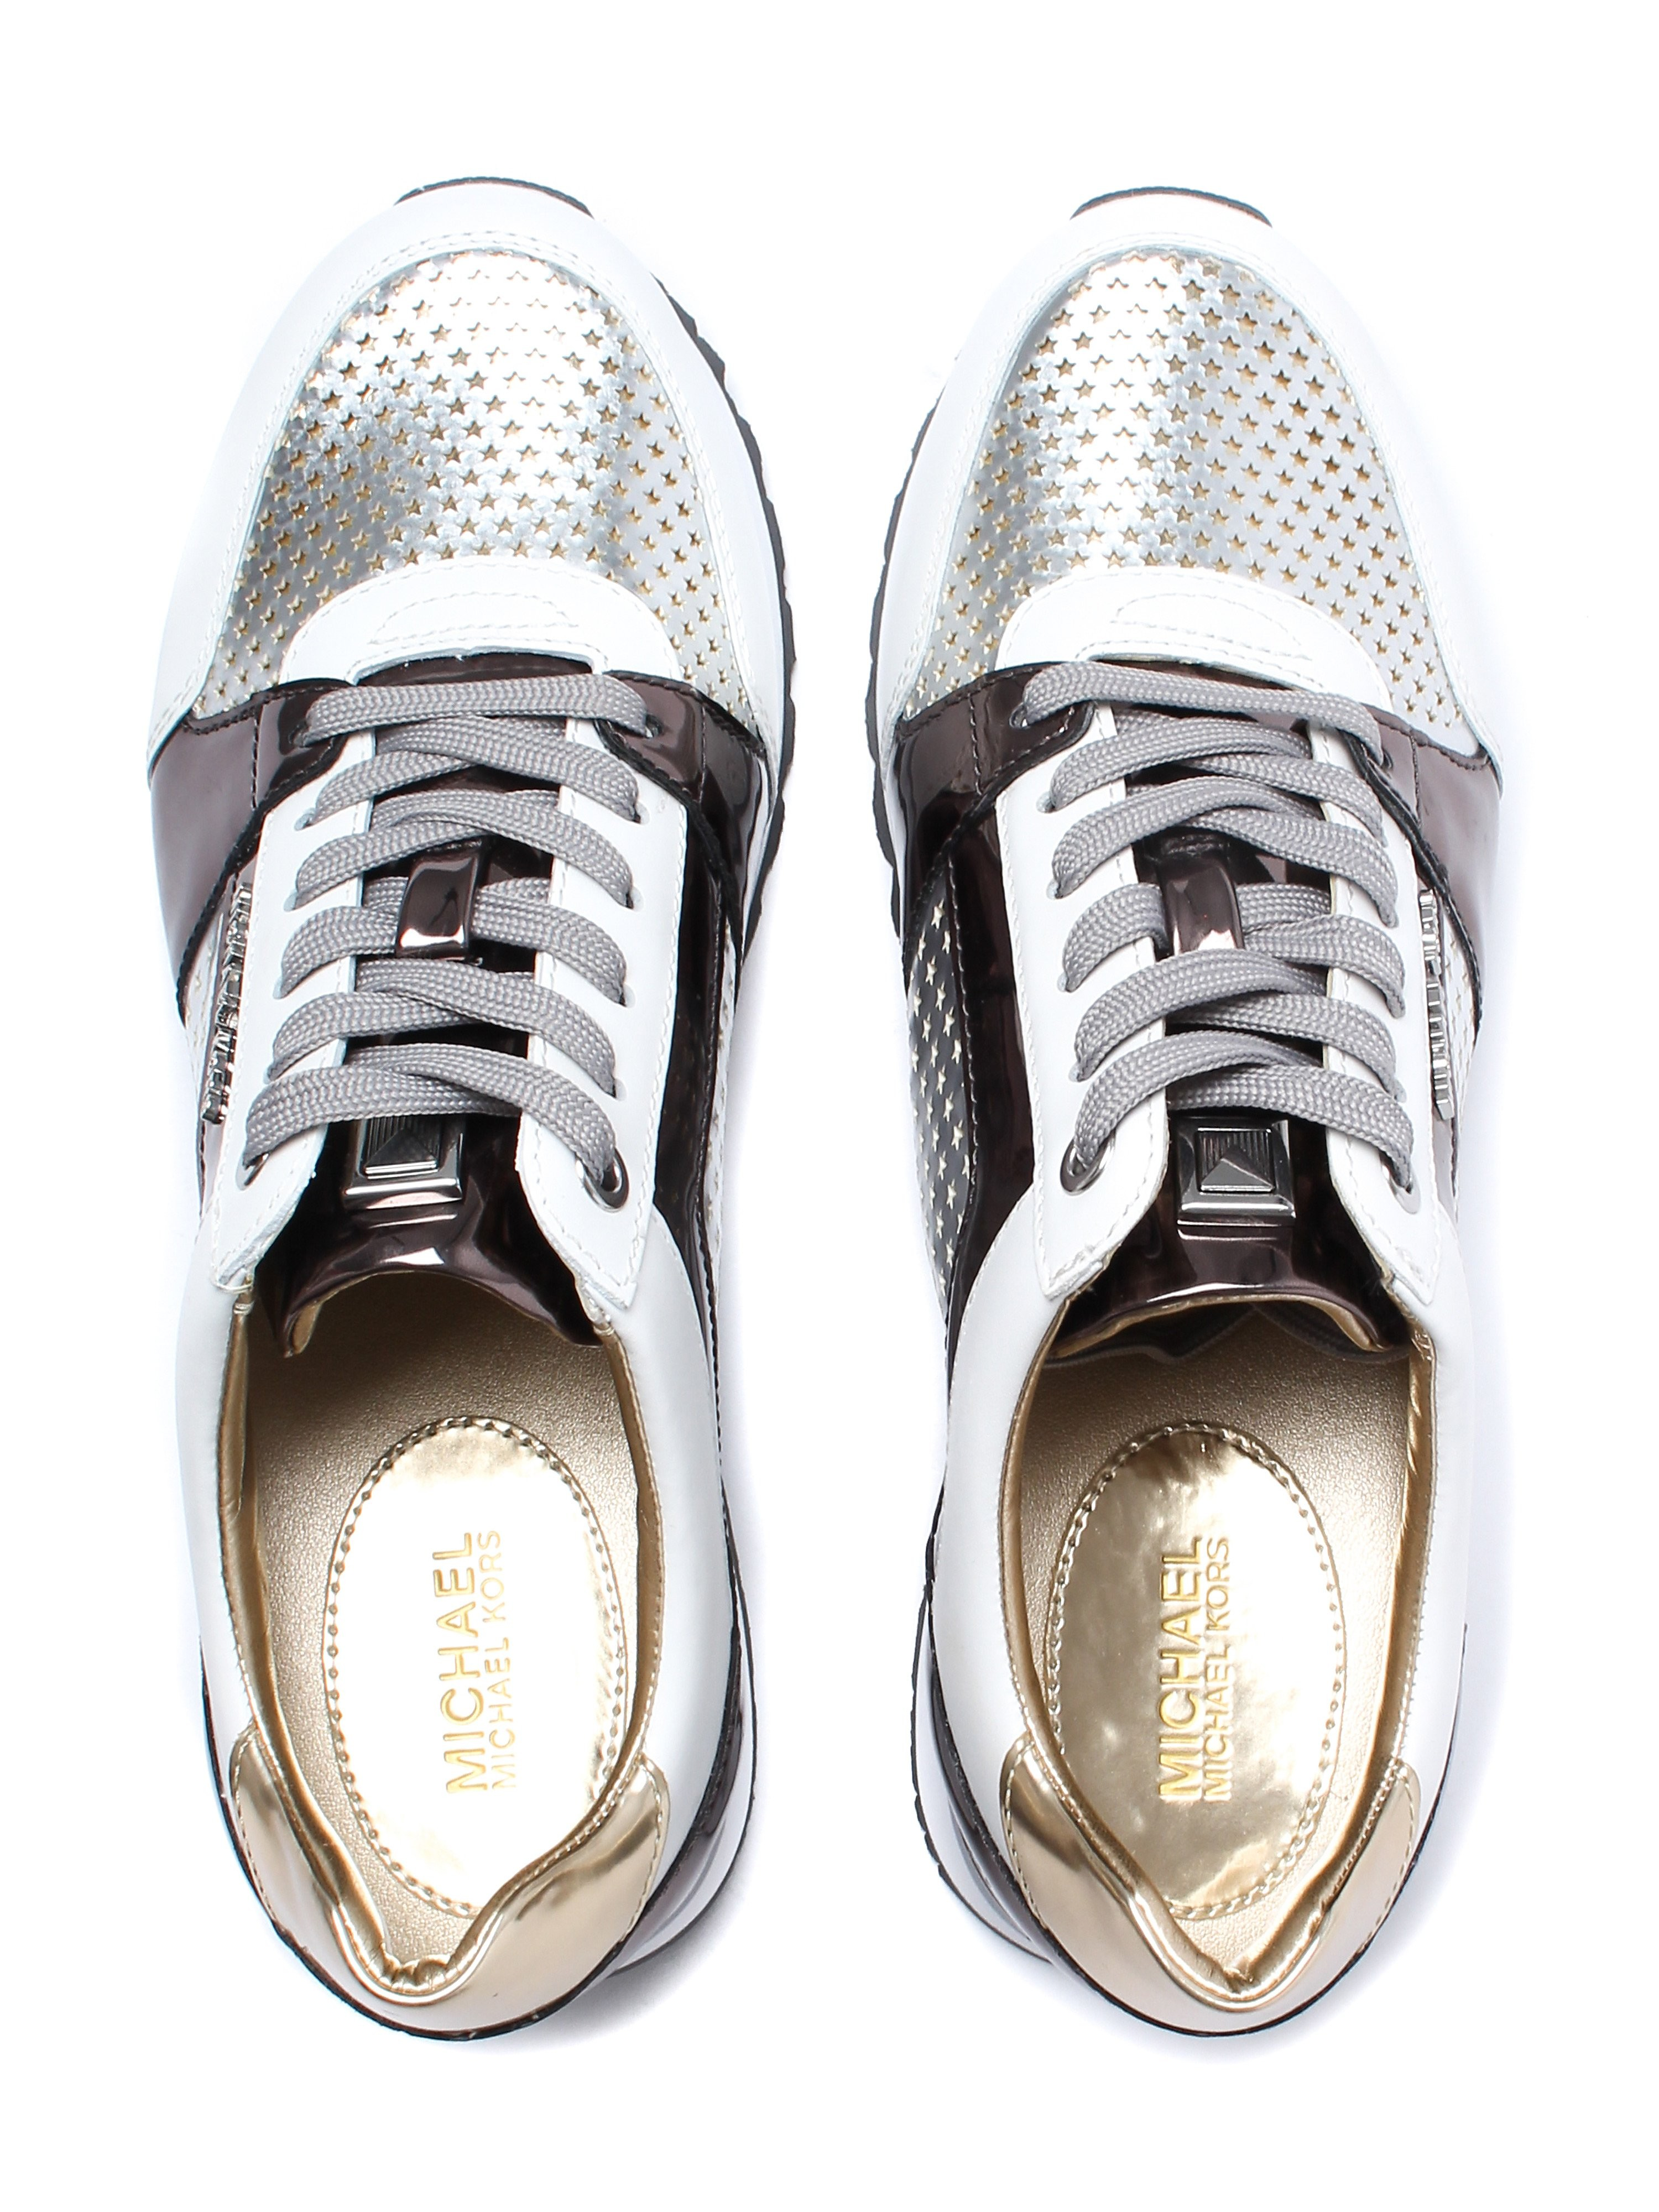 Michael Michael Kors Women's Billie Trainers - Silver/Optic White